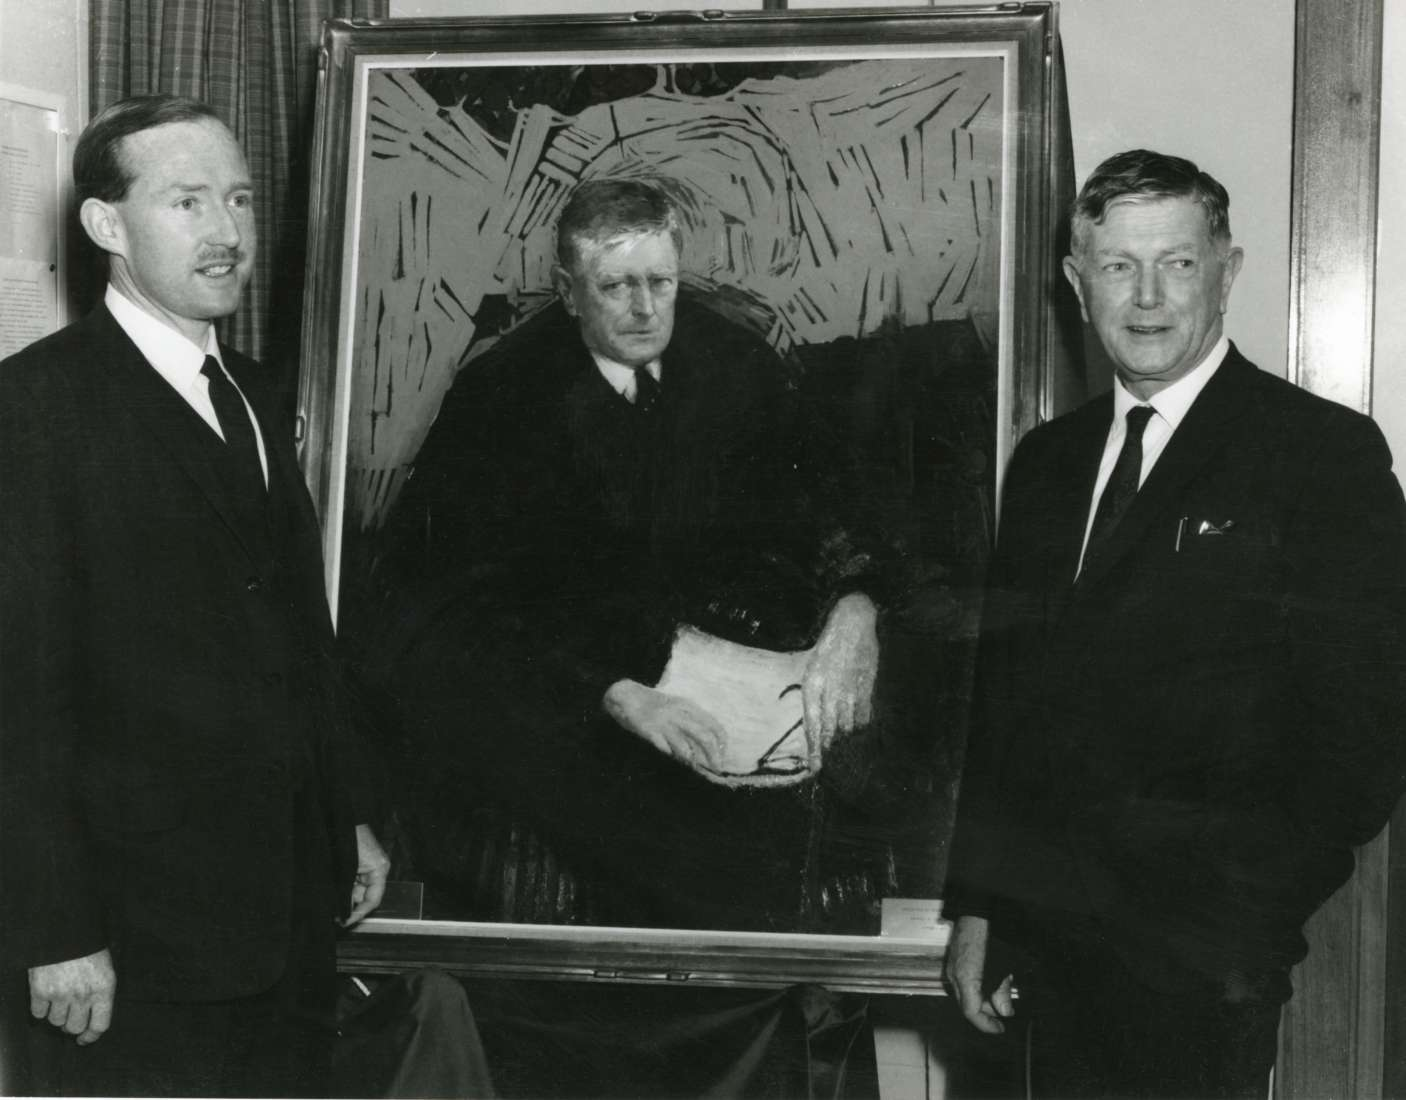 Sir Andrew Grimwade and Sir Frank Macfarlane Burnet pictured with a portrait of Burnet, painted by Clifton Pugh.